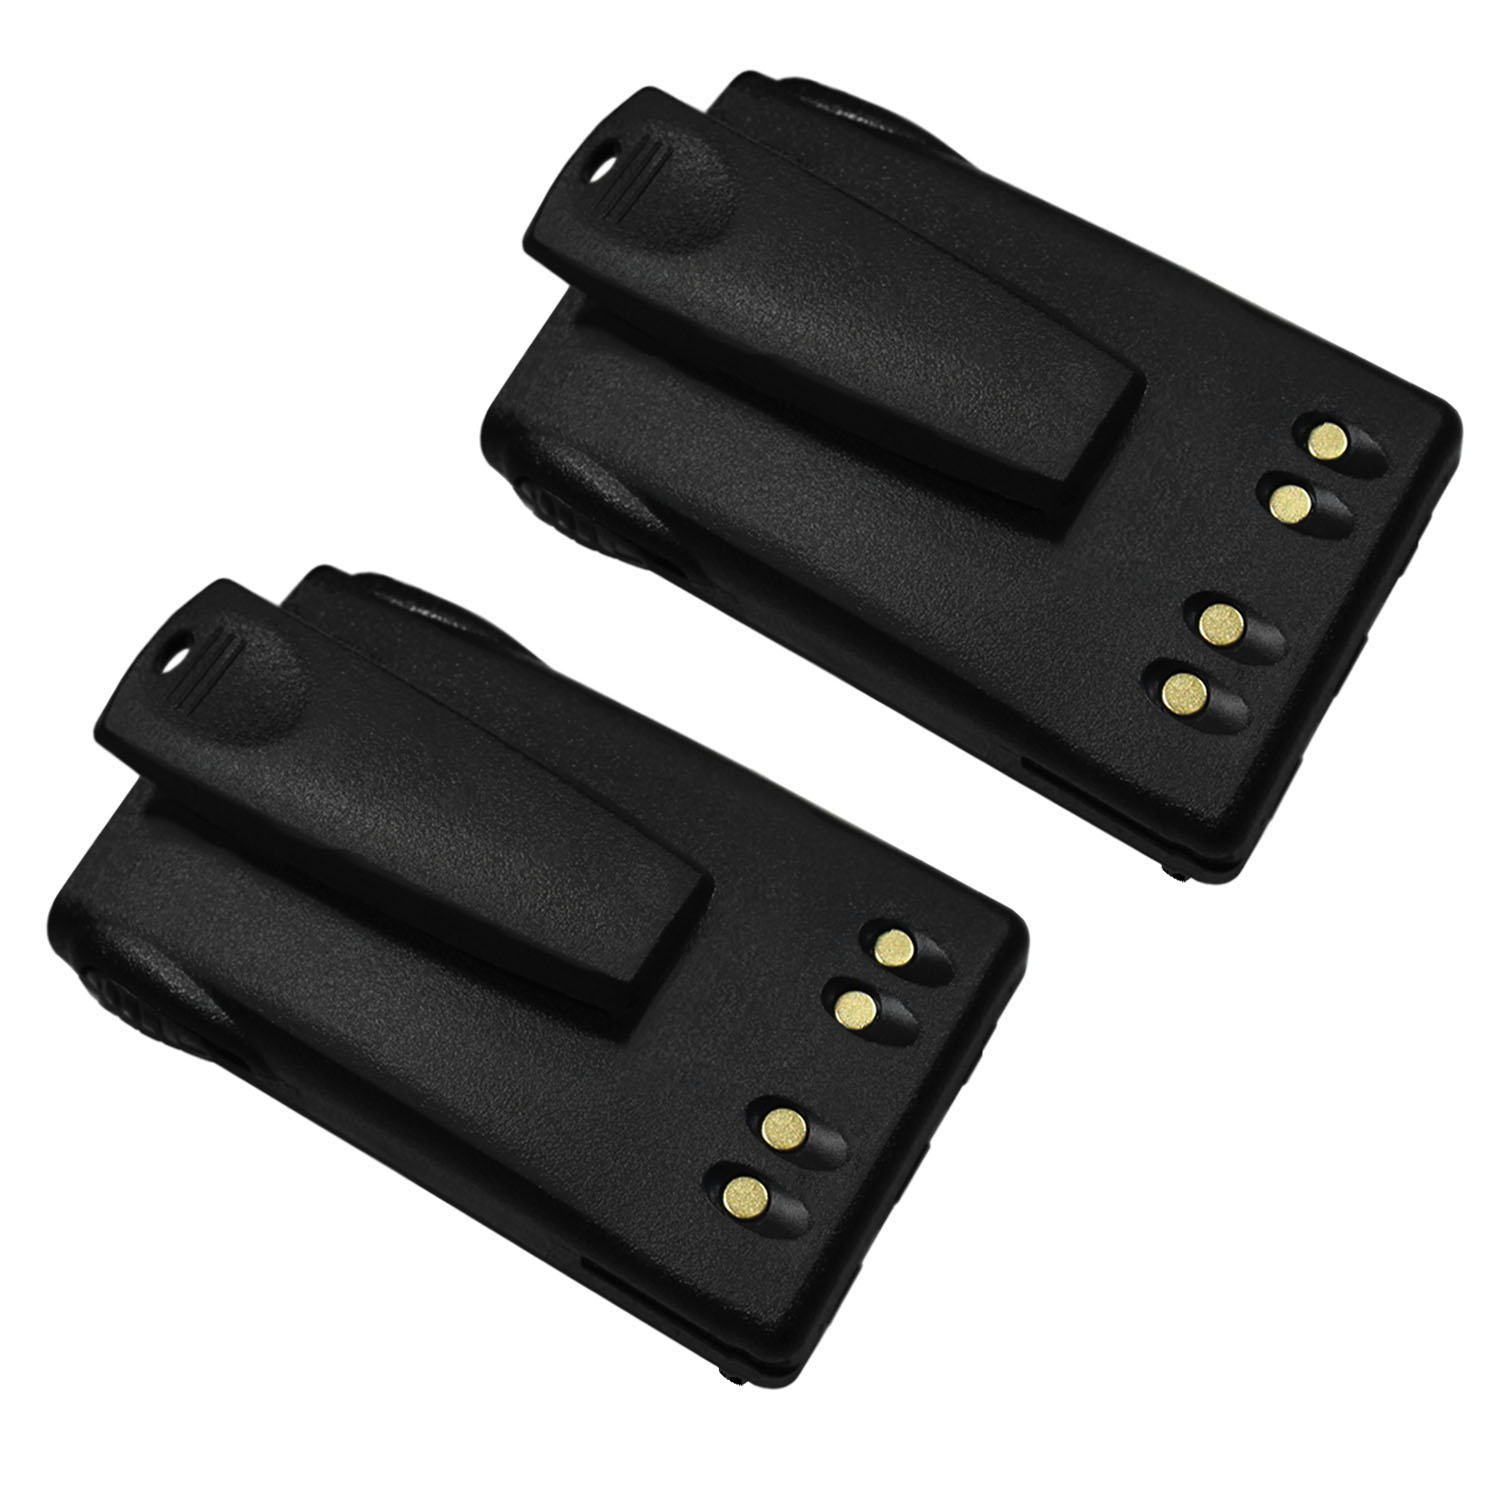 JMNN4023 Replacement Battery with CLIP for Motorola EX600 XLS - 2 Pack